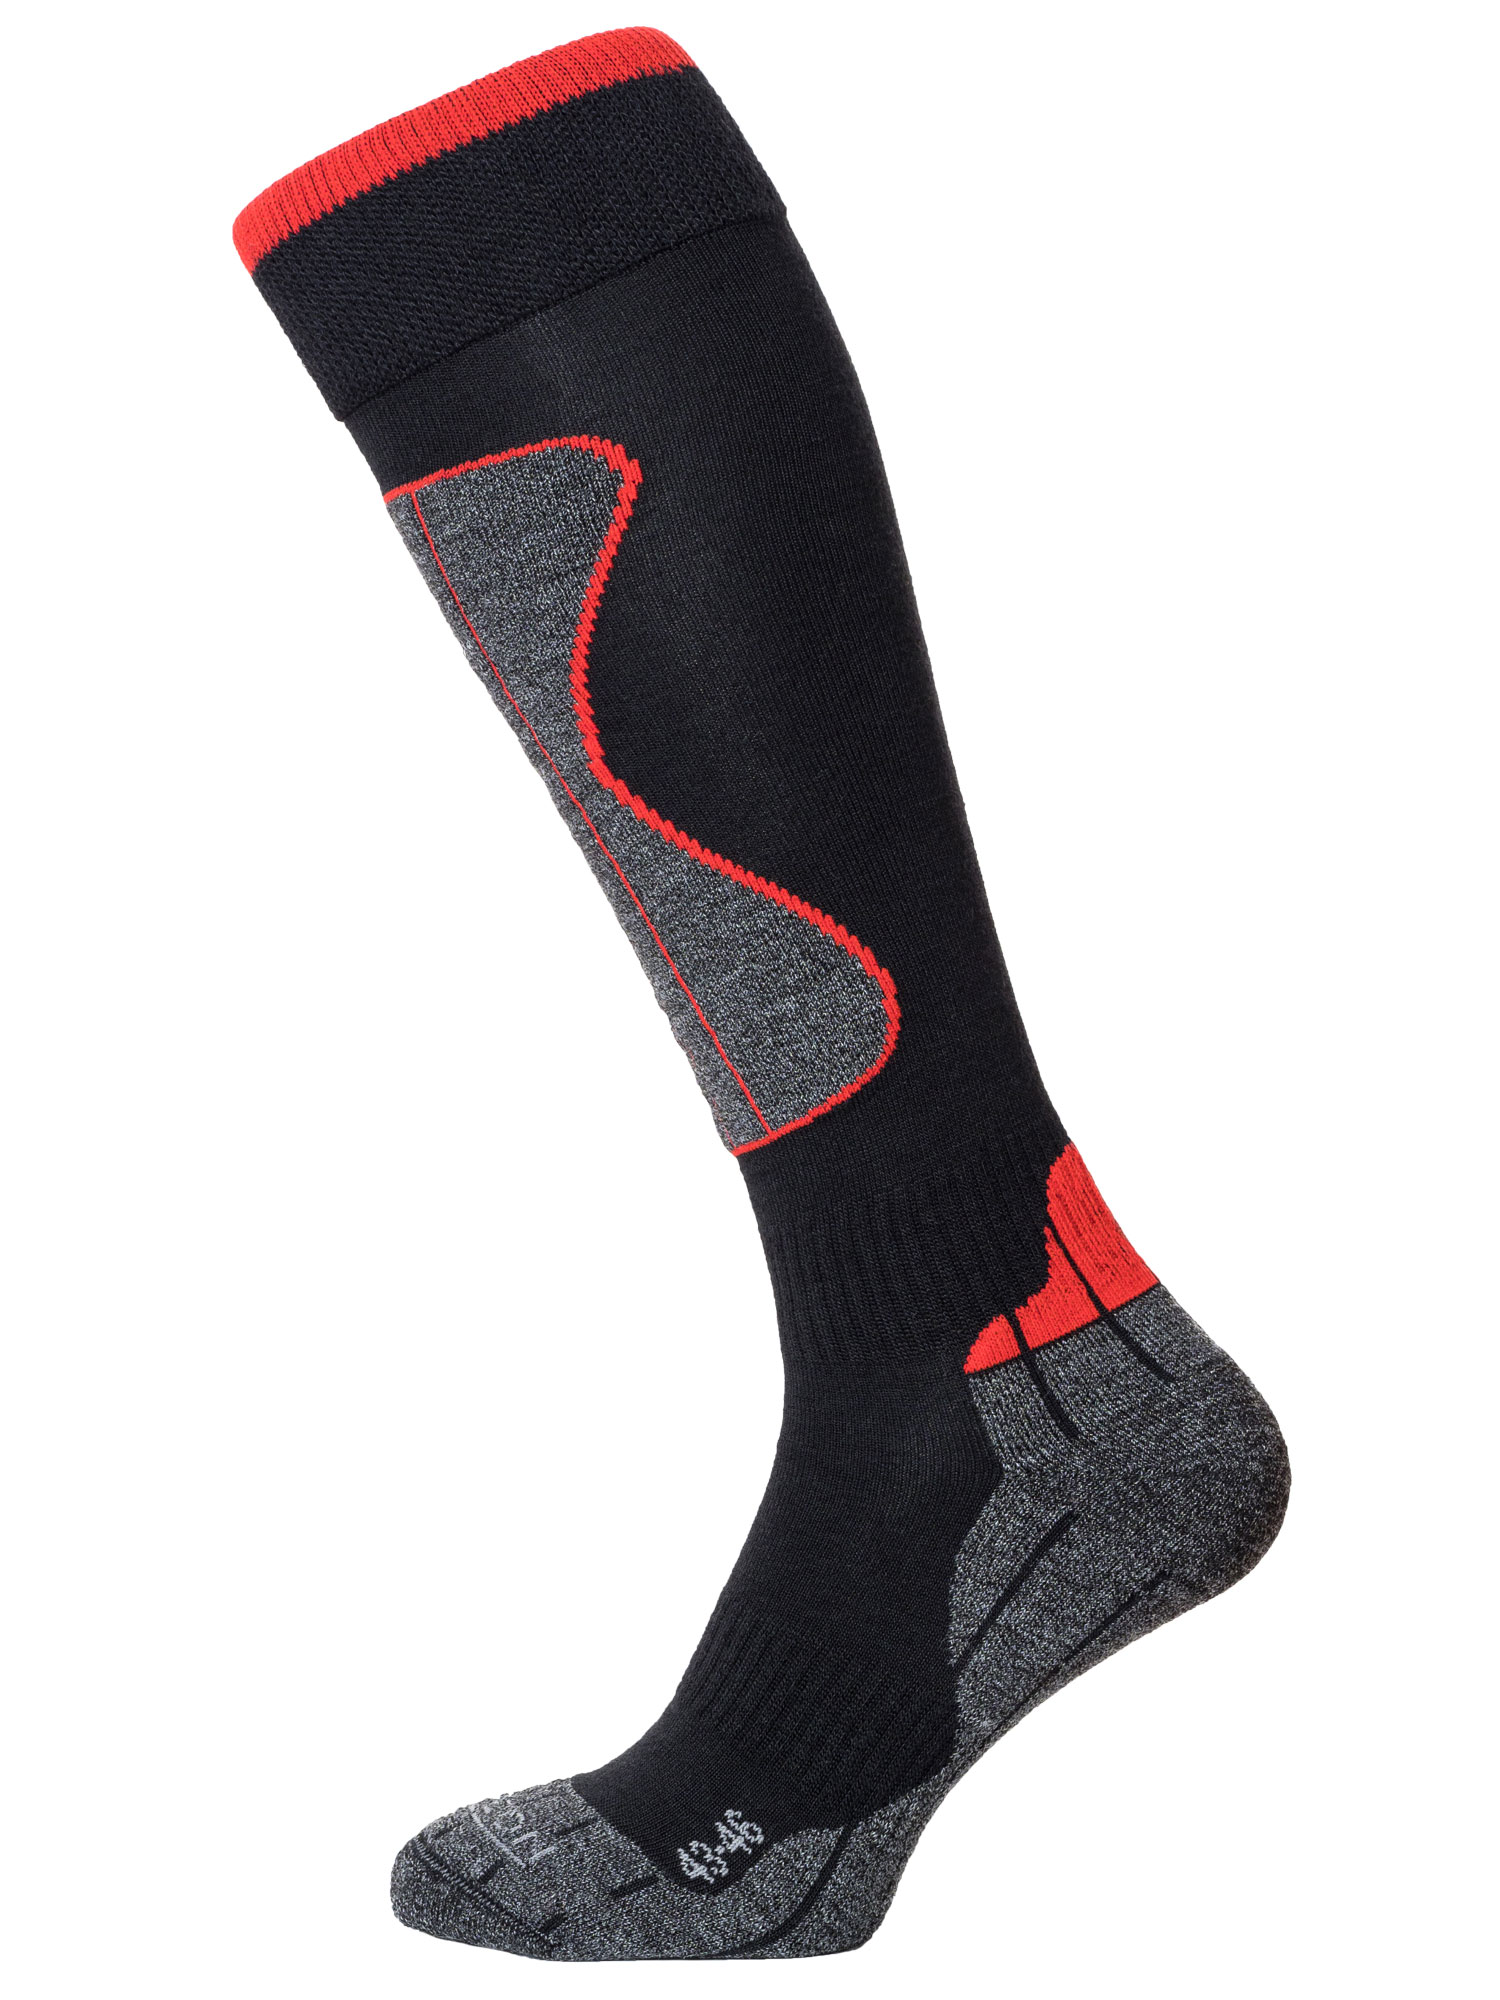 Winter Sport Technical Merino – Black / Red